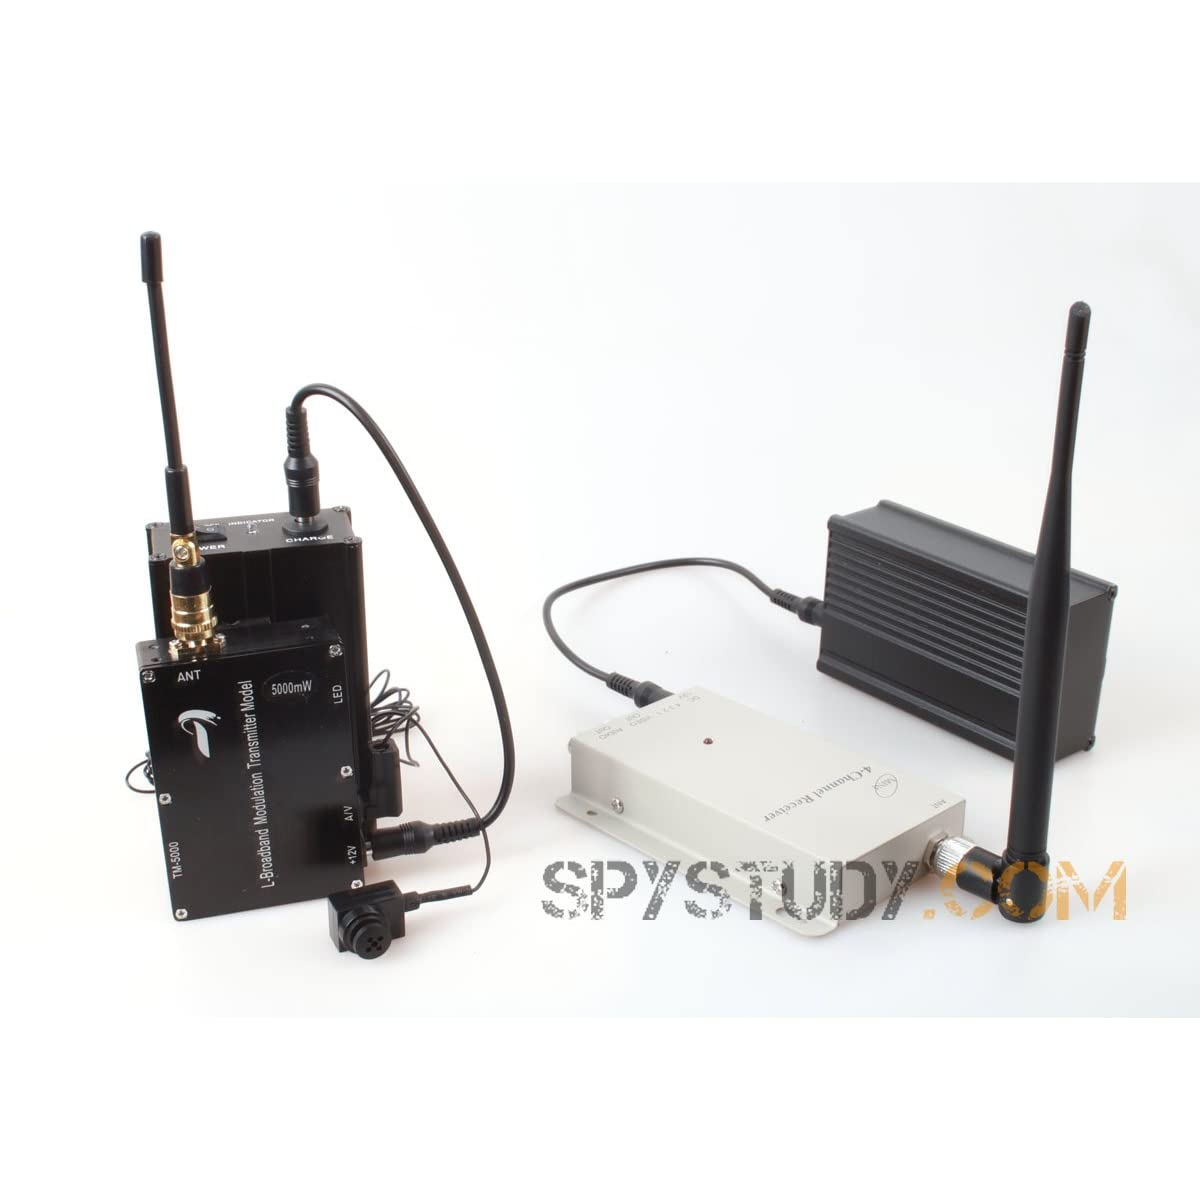 Wireless hidden spy camera-live transmission-over 1000 meter ran